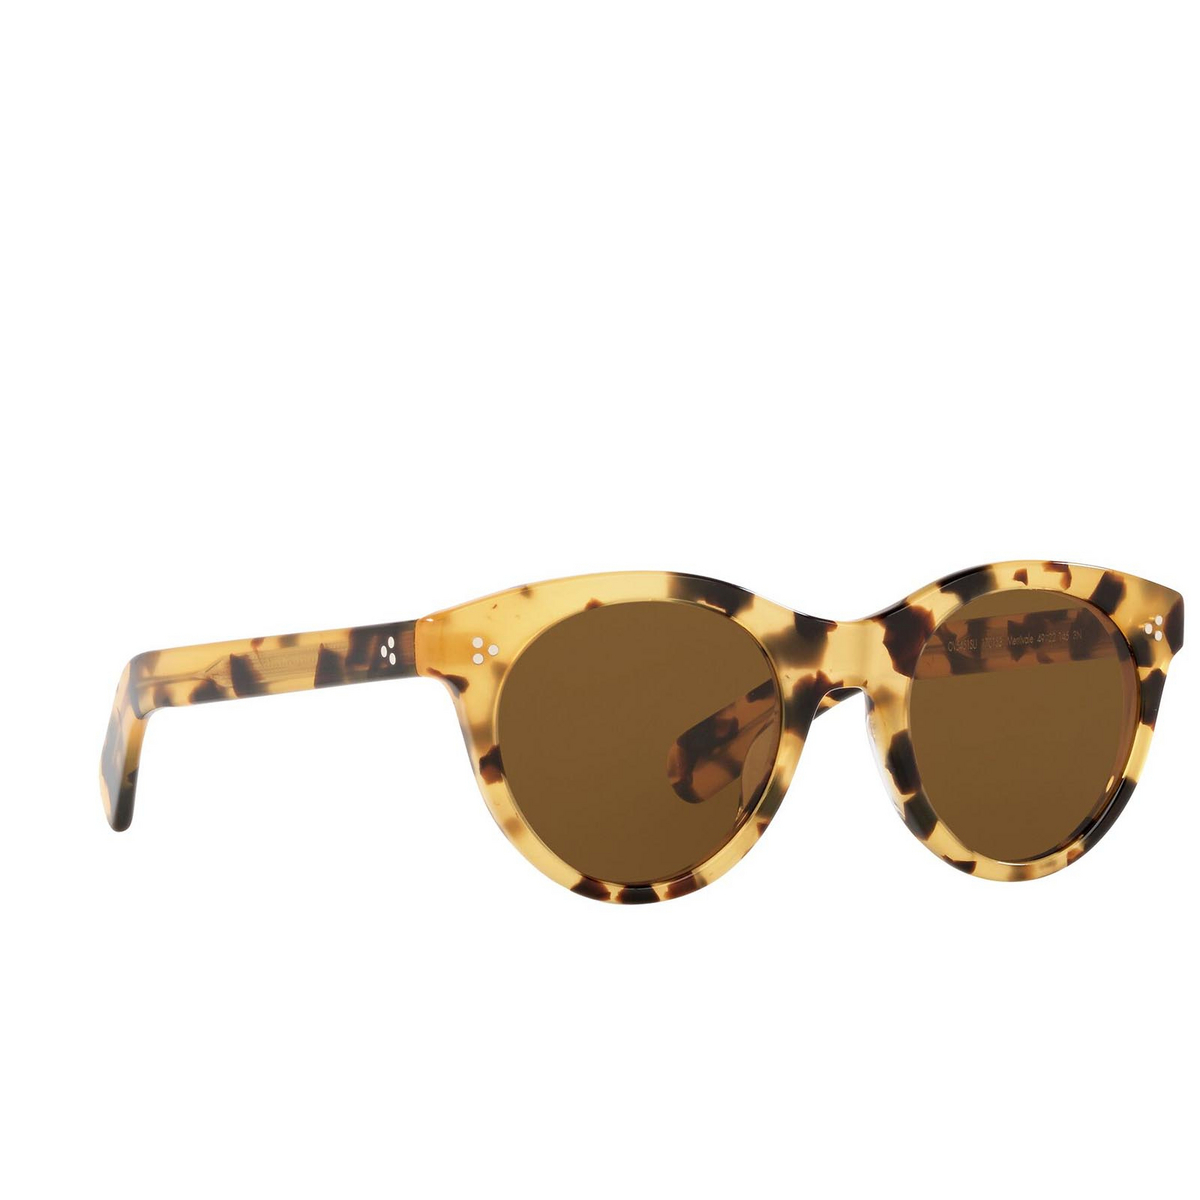 Oliver Peoples® Round Sunglasses: Merrivale OV5451SU color Ytb 170153 - three-quarters view.